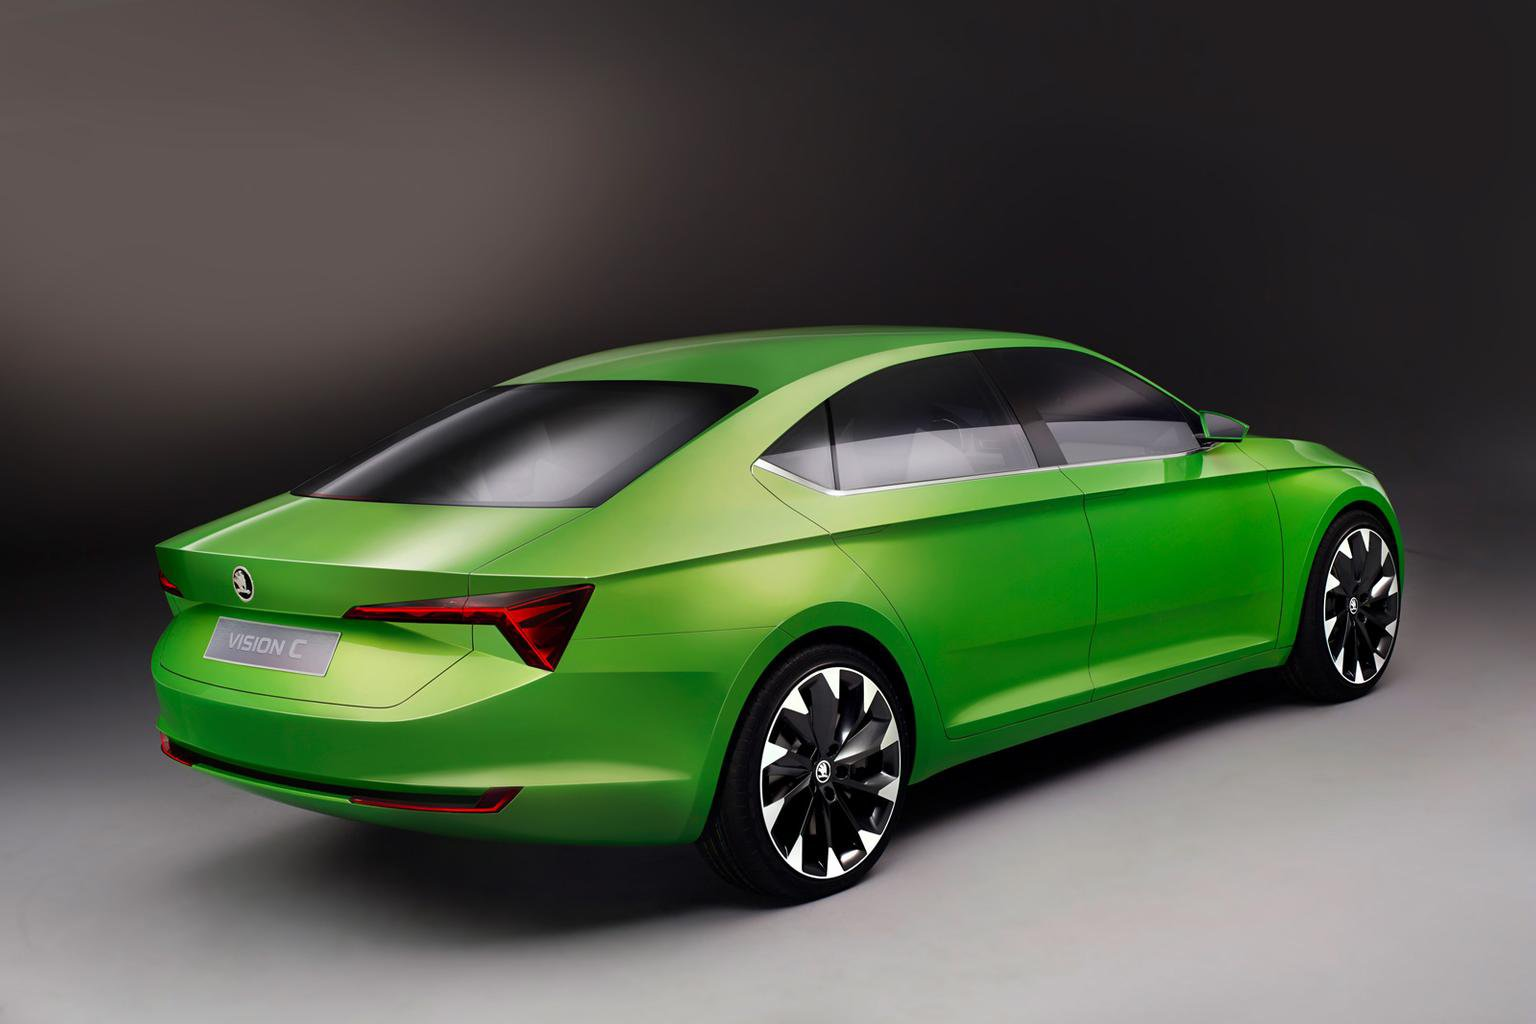 Skoda VisionC five-door coupe concept revealed